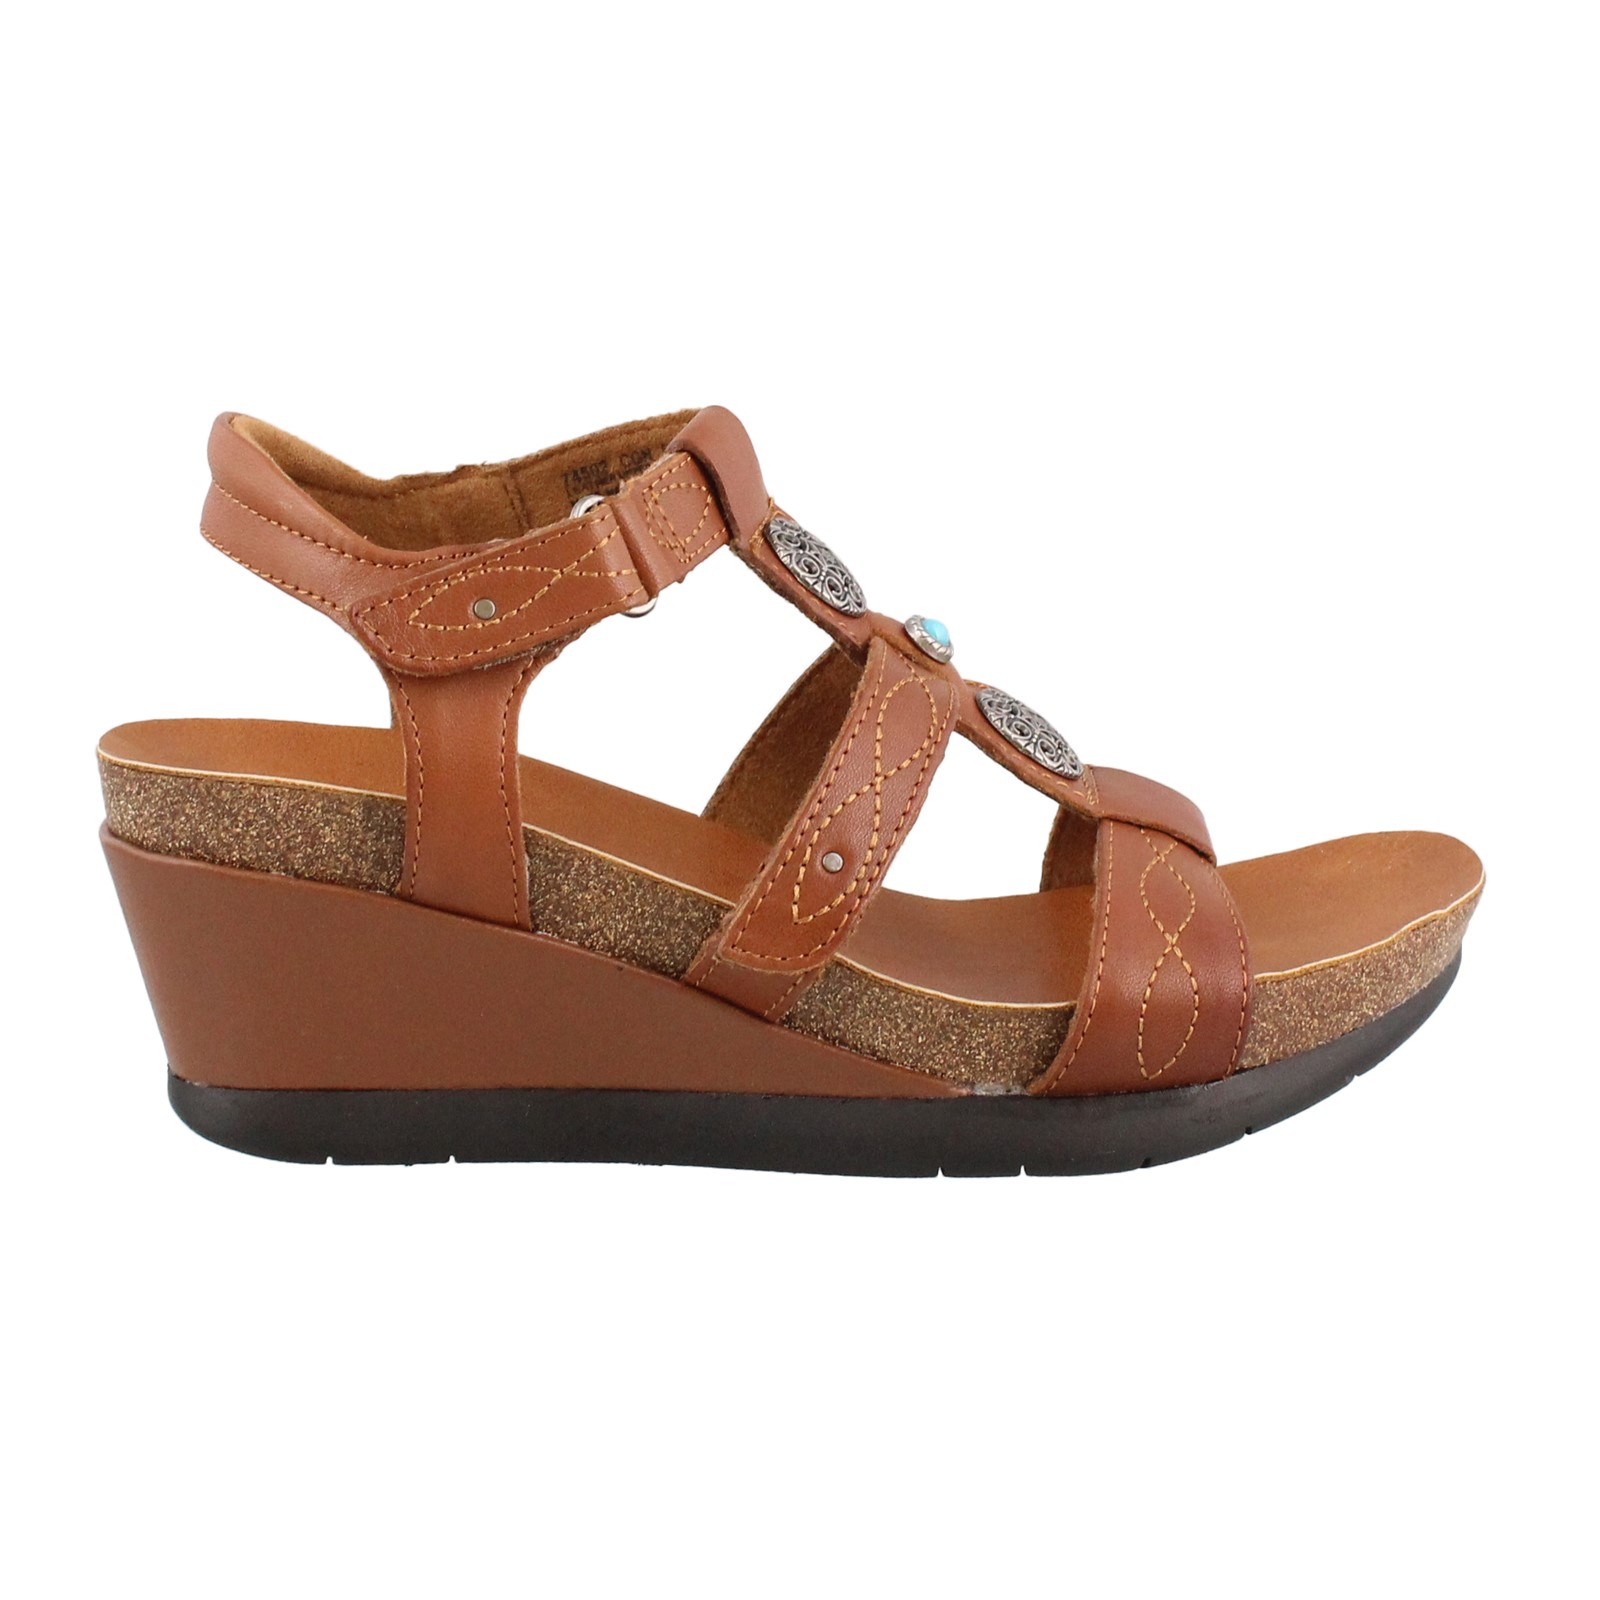 Women's Minnetonka, Della Mid Heel Wedge Sandals